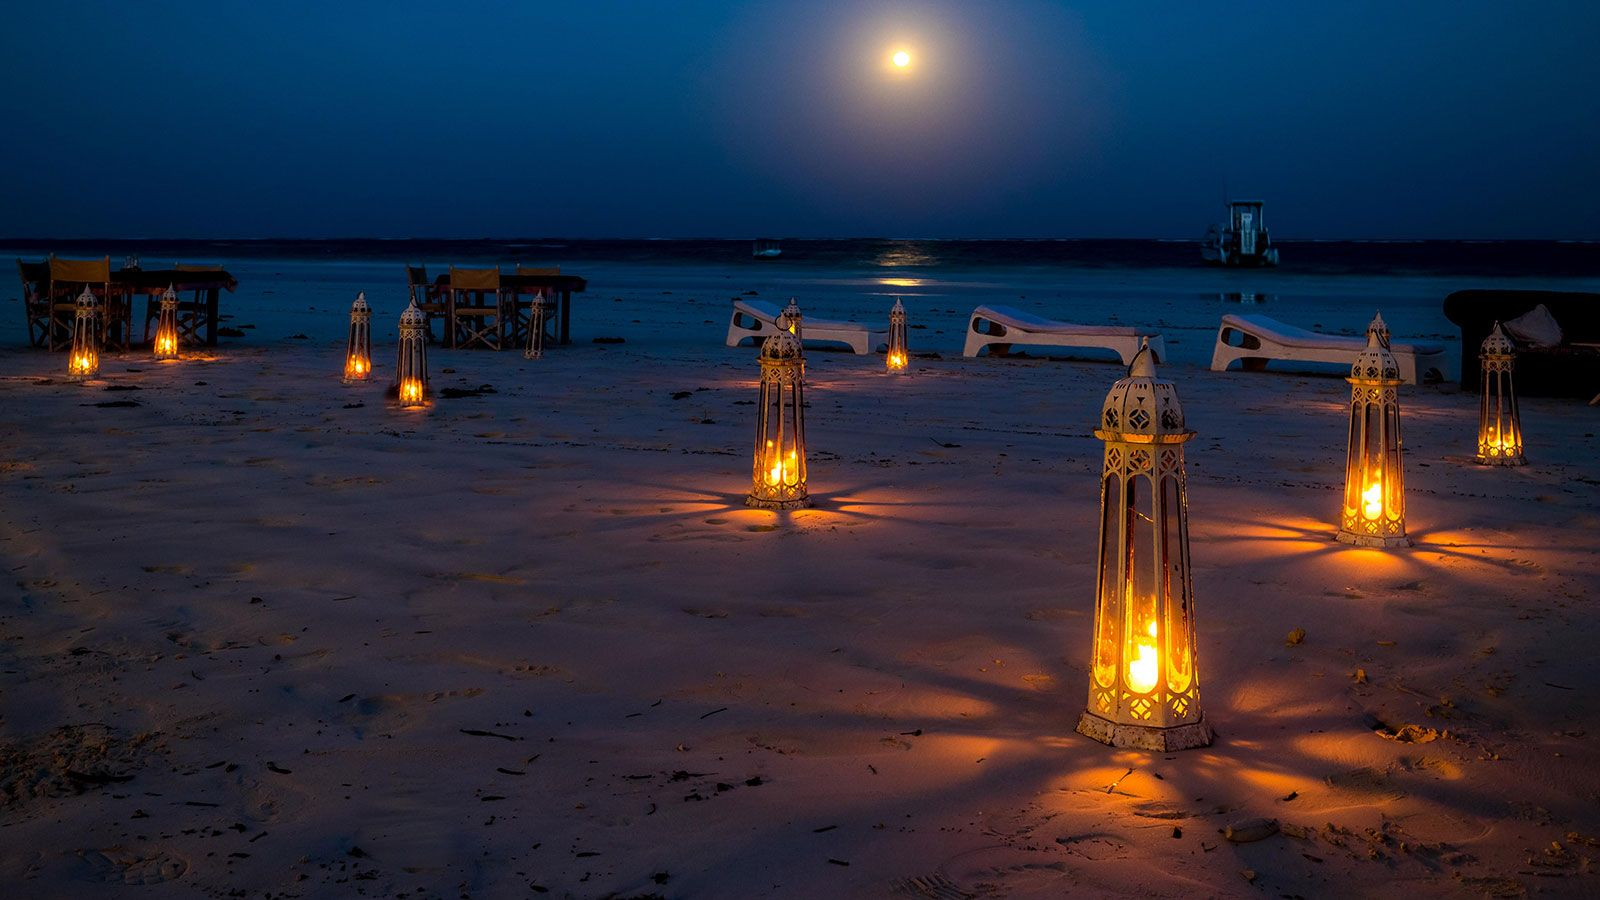 Full Moon DInner Diani Beach Kenya